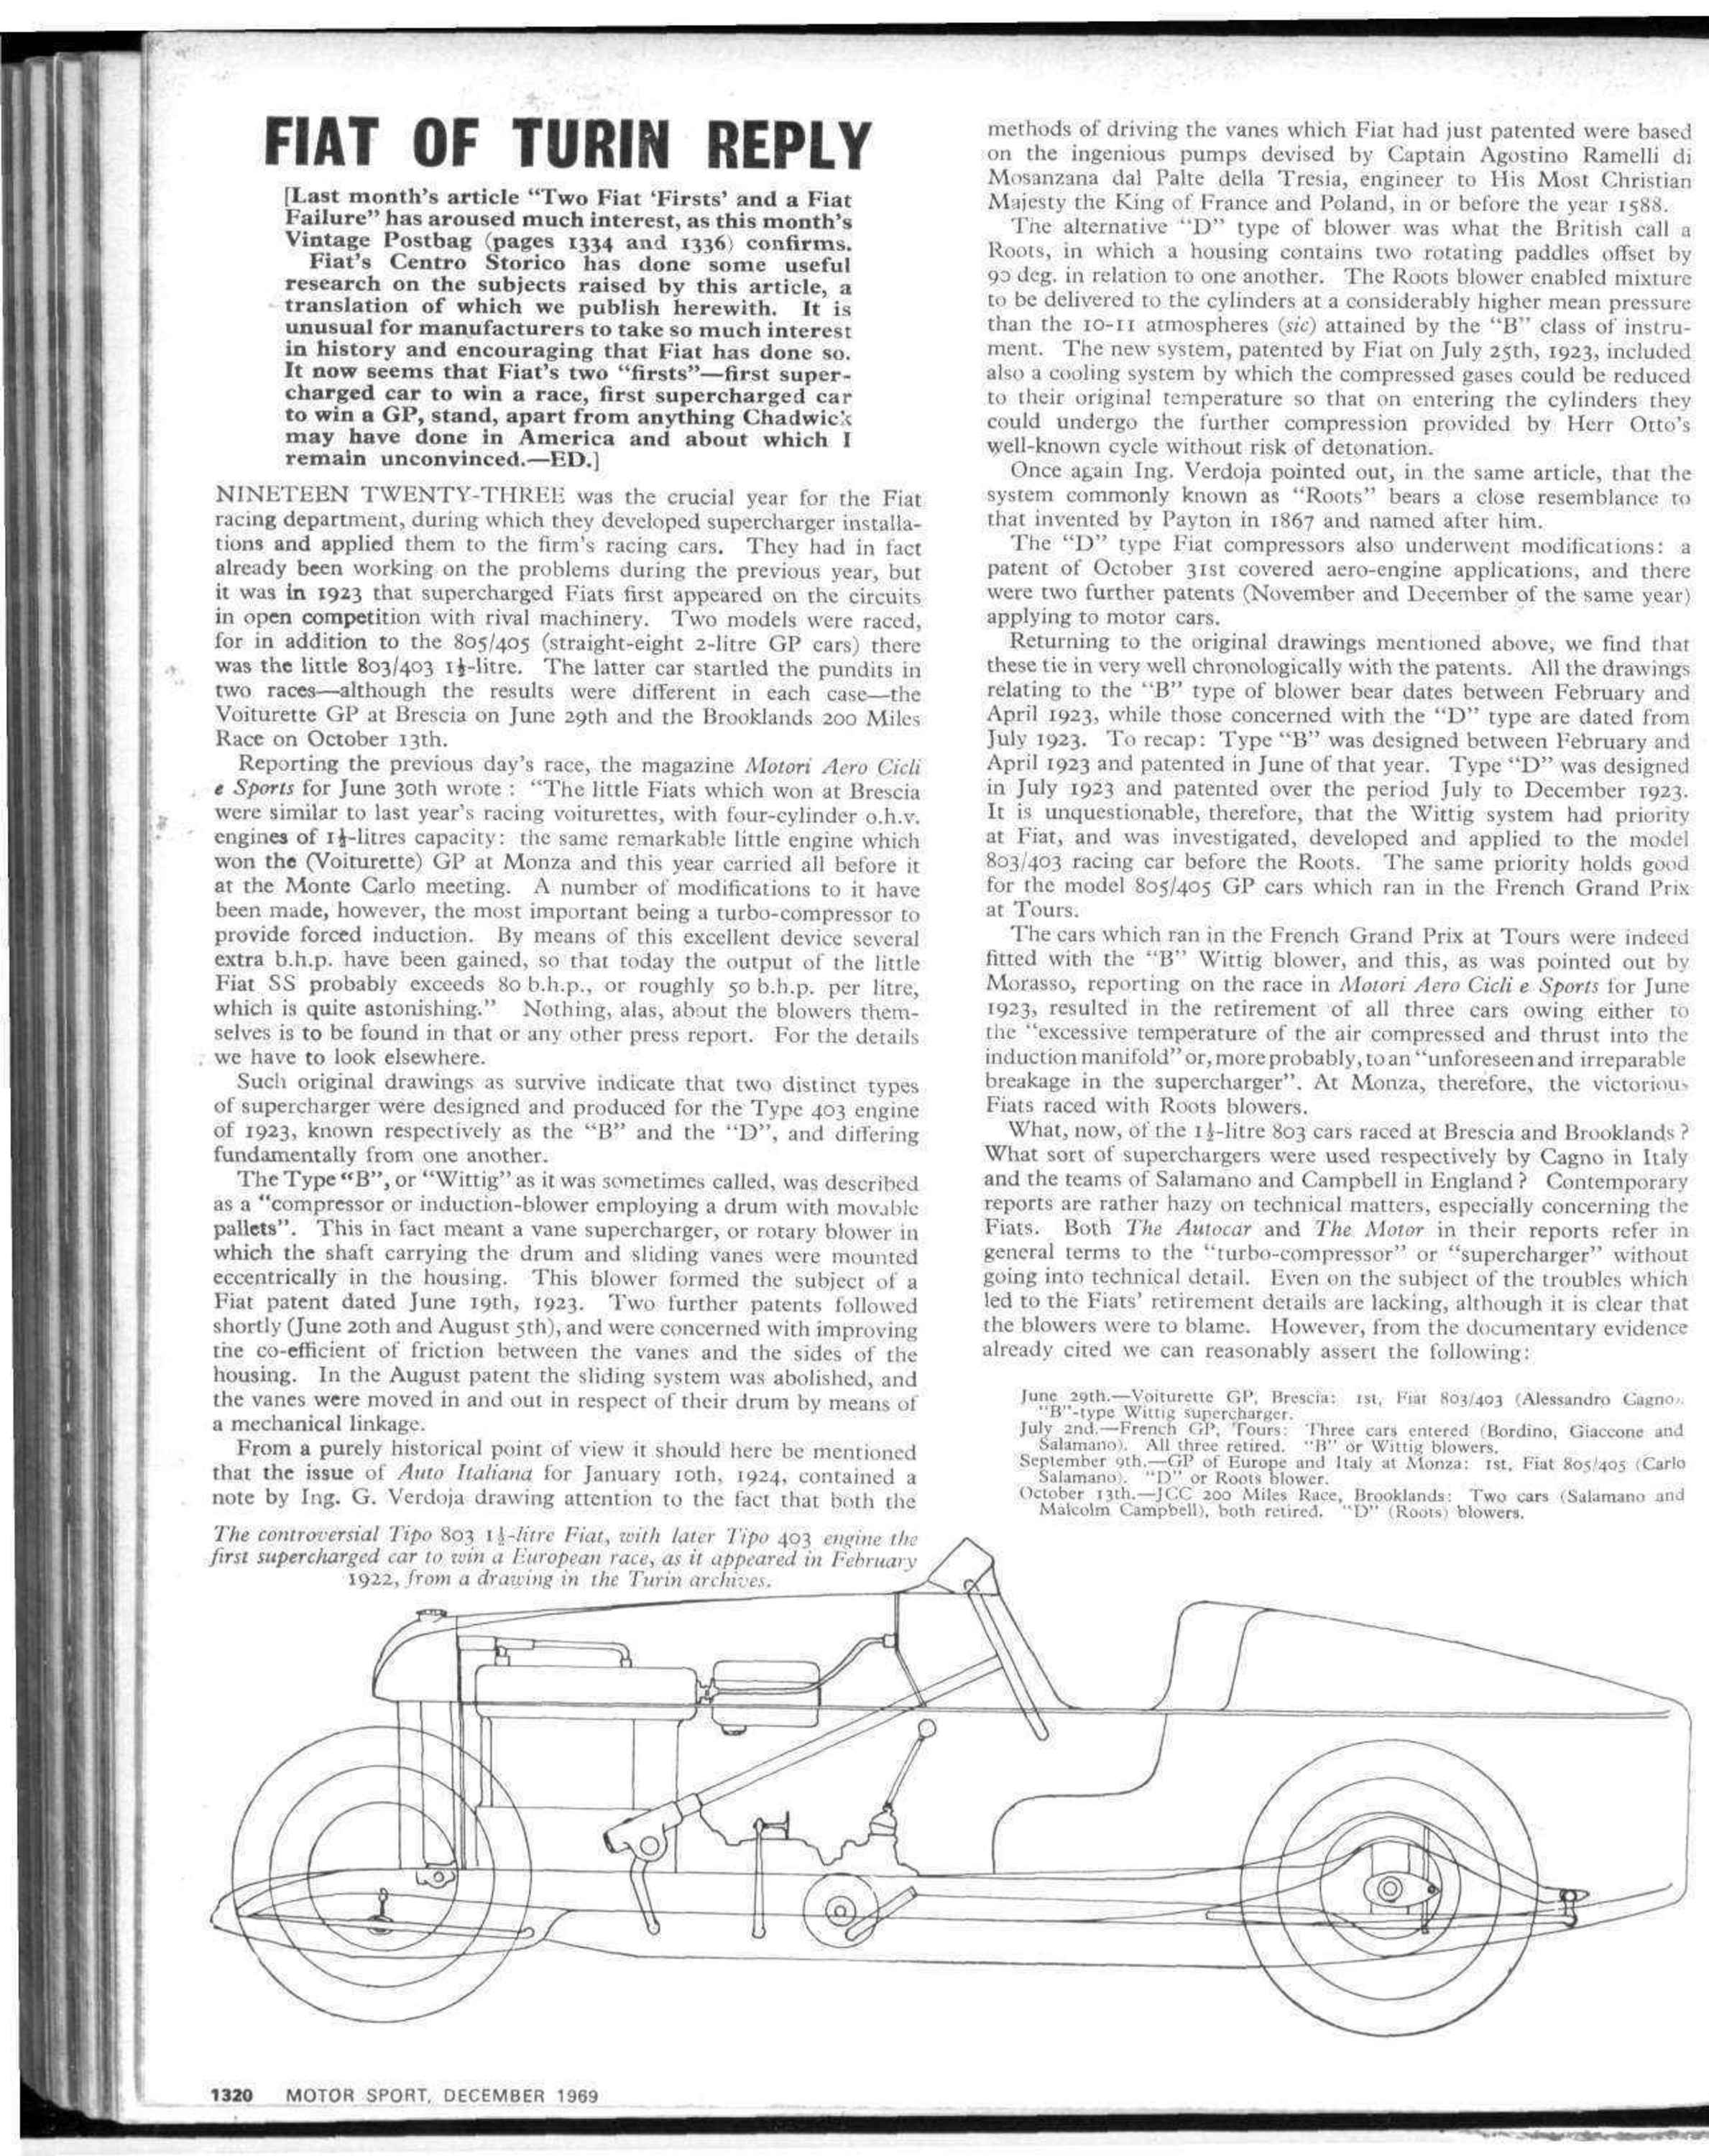 Fiat of Turin Reply | Motor Sport Magazine Archive